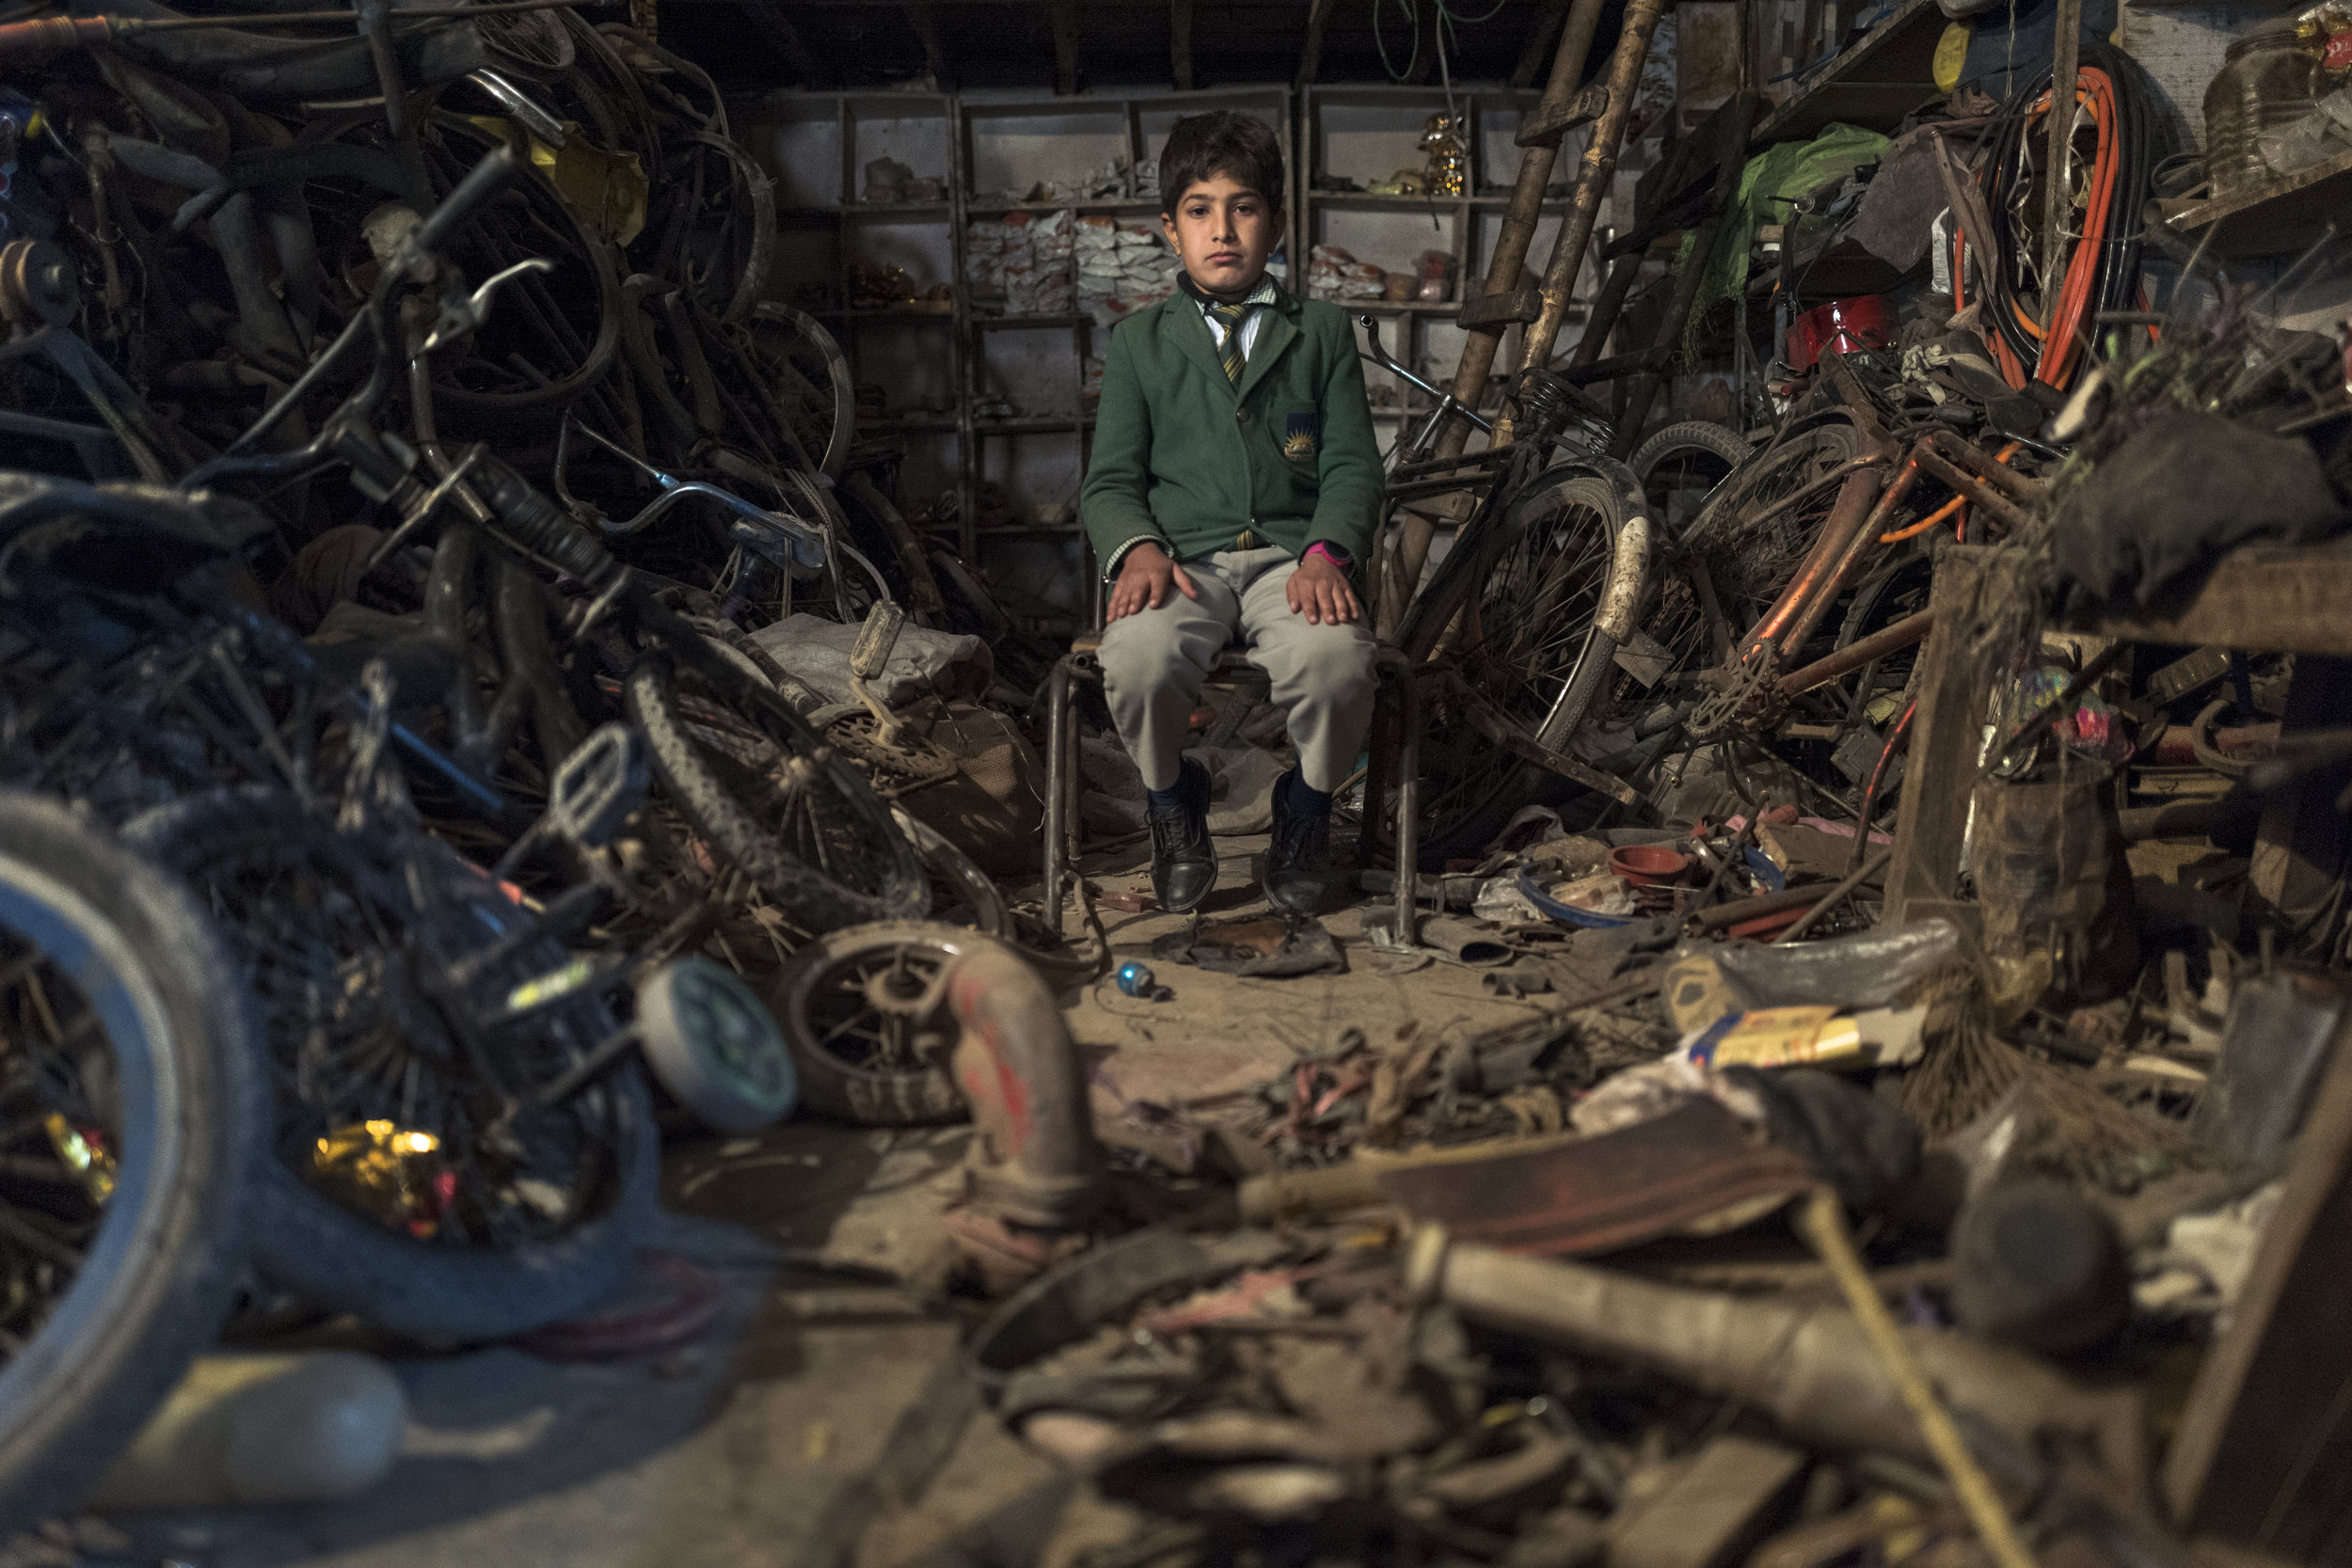 Schoolboy keeps watch at a bike repair shop